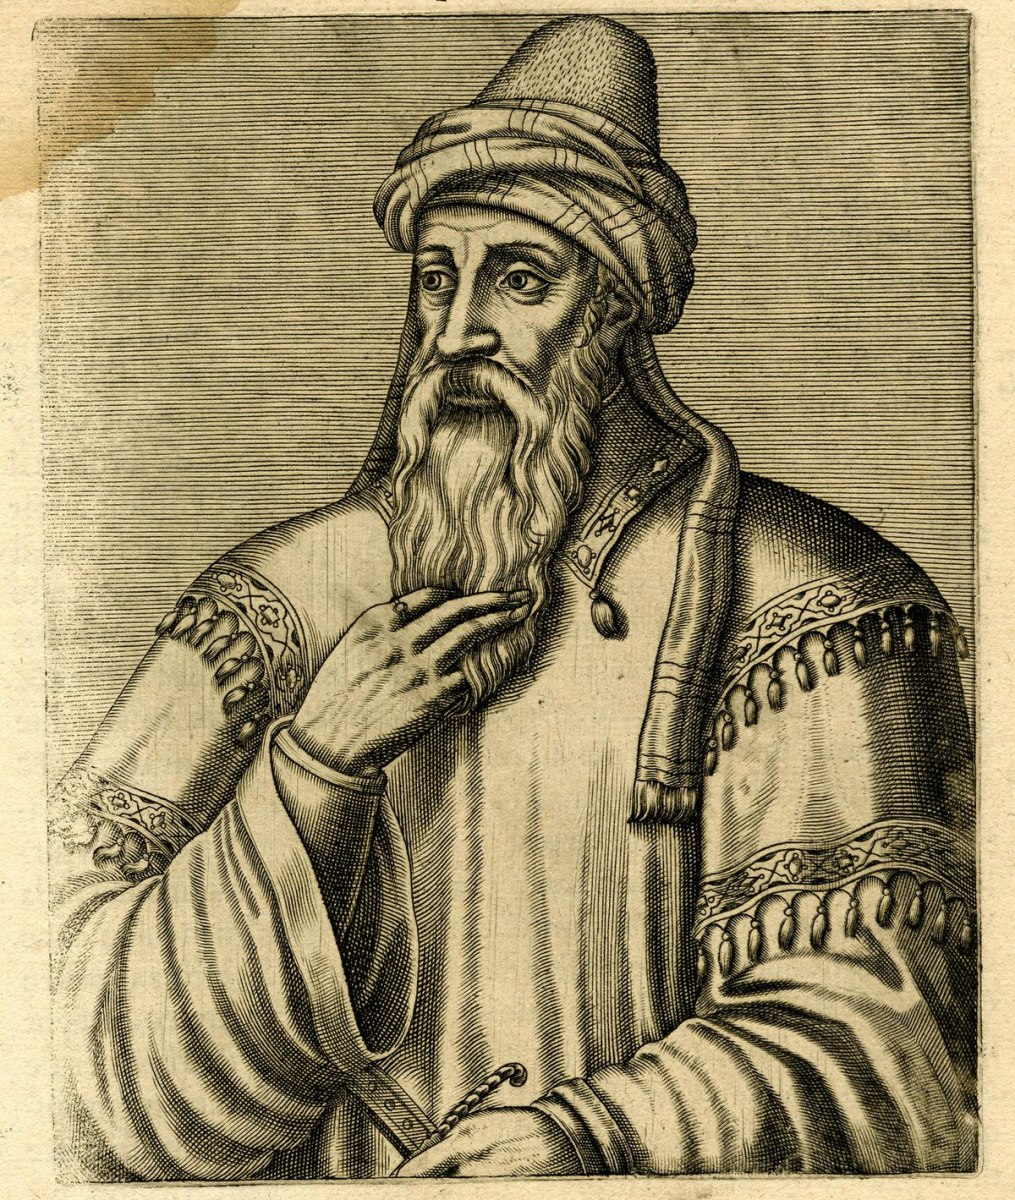 Saladin was a Generous KIng